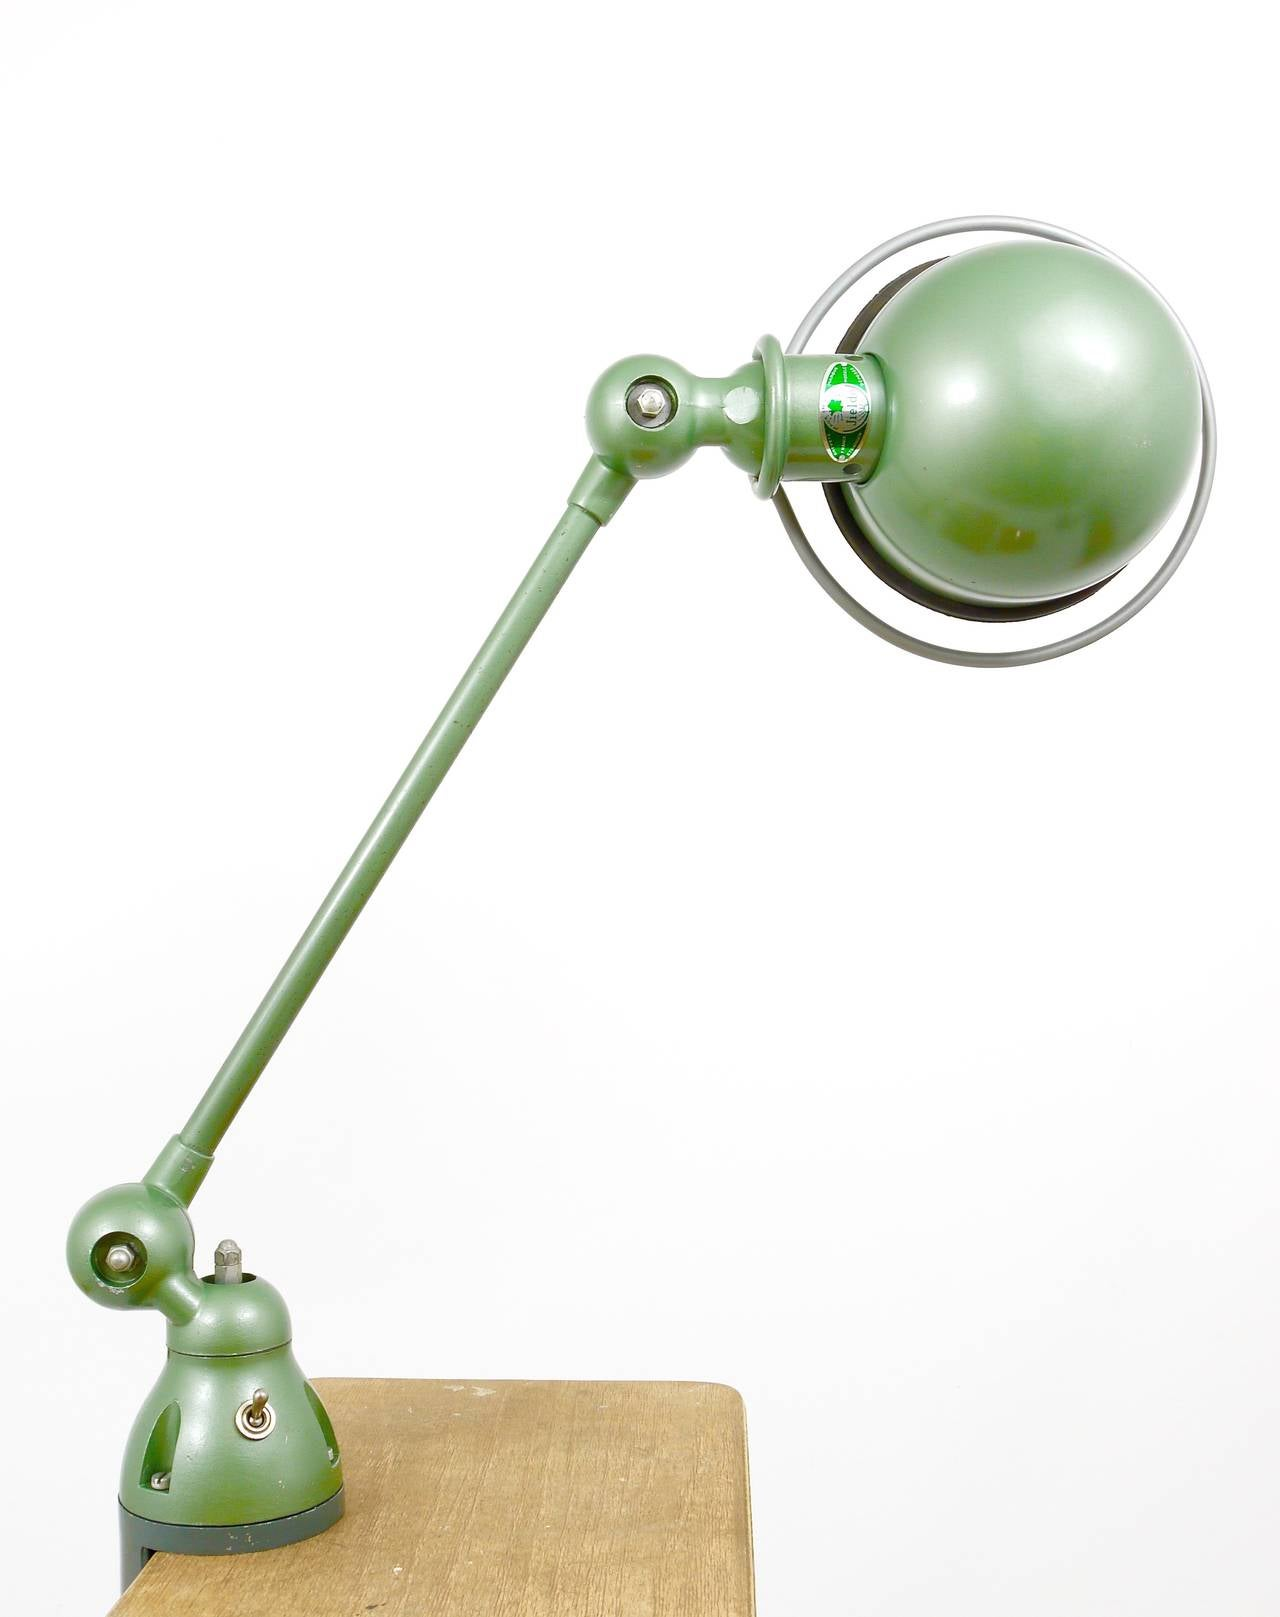 Two Matching Jean Louis Domecq for Jielde Lyon Industrial Clamp Lamps, 1950s For Sale 2